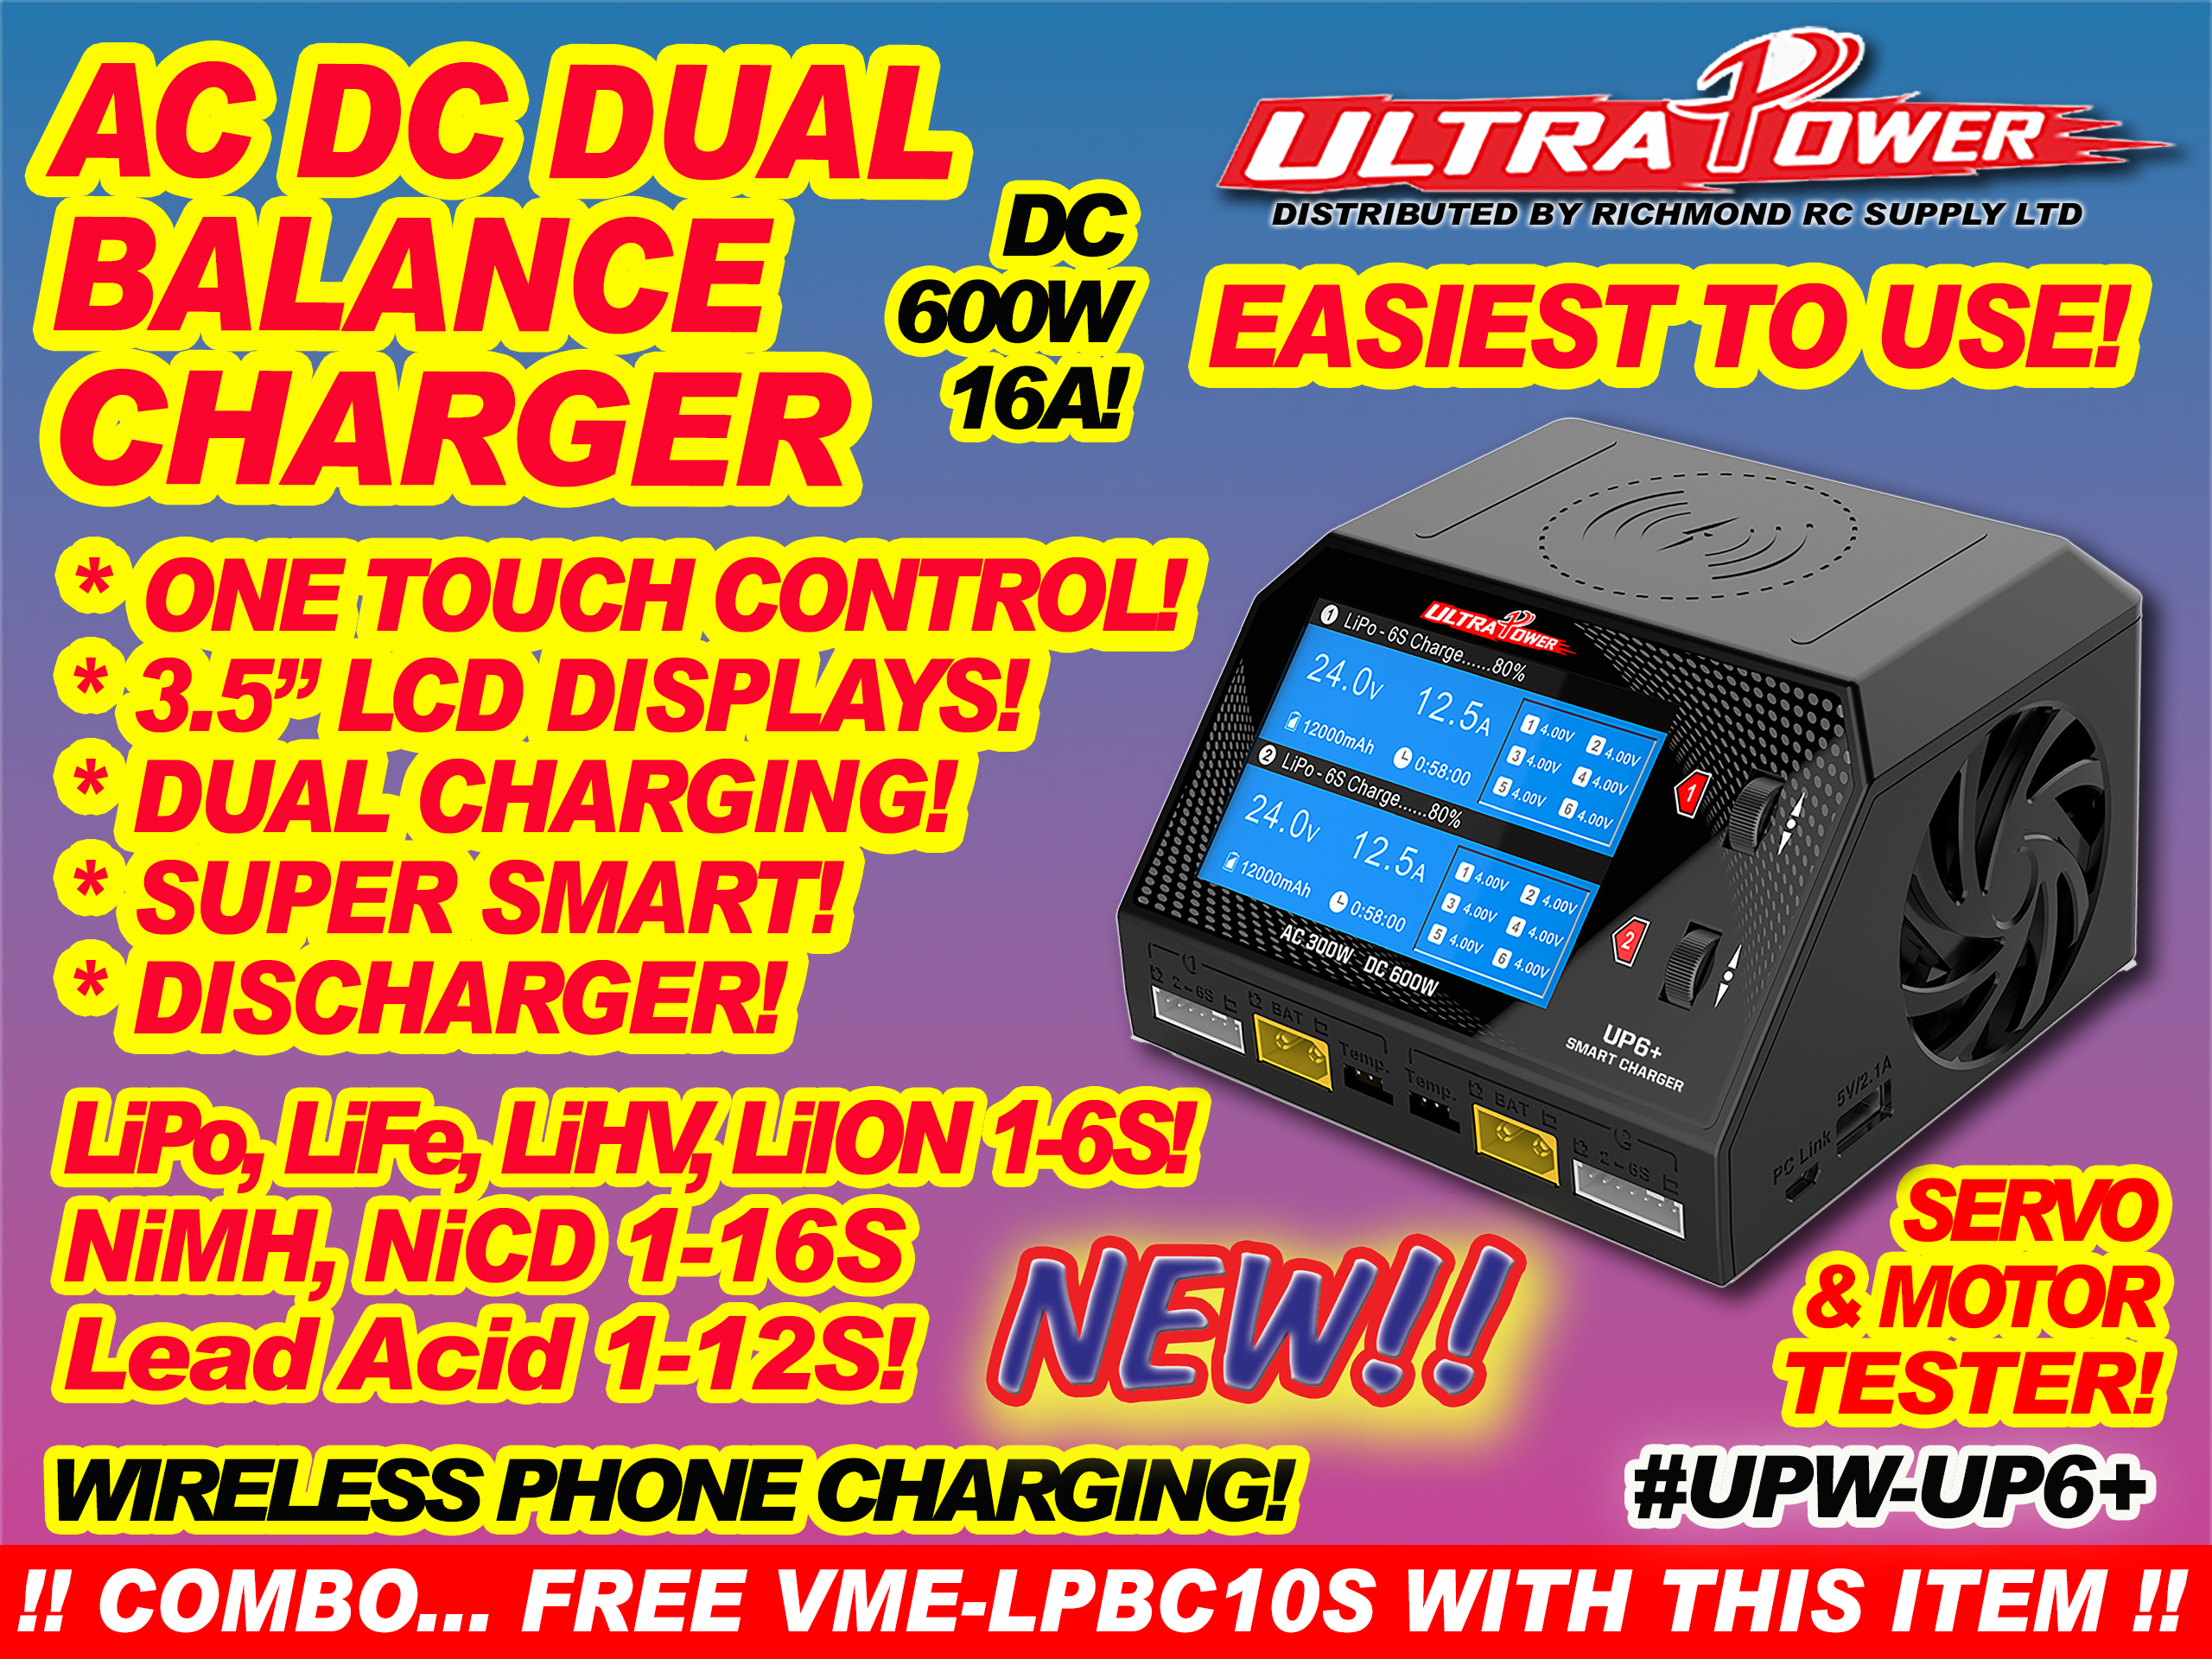 ULTRA POWER CHARGER - AC-DC, 600W 16A DUAL w/LCDx2  [ 40402]